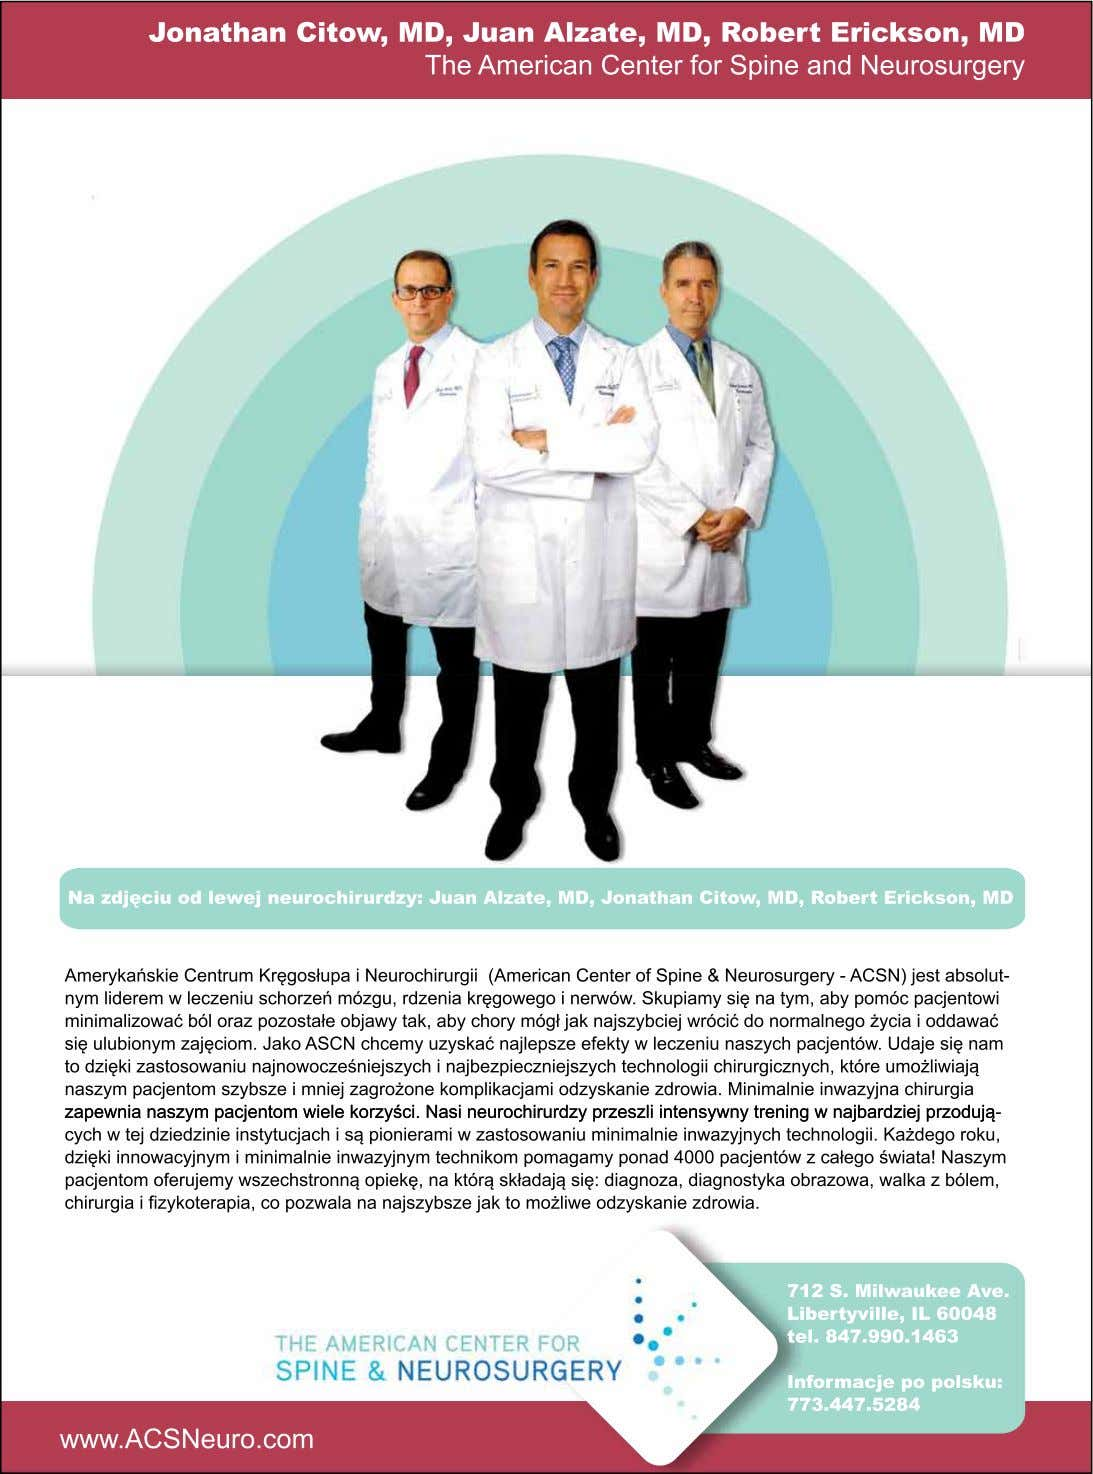 Jonathan Citow, MD, Juan Alzate, MD, Robert Erickson, MD The American Center for Spine and